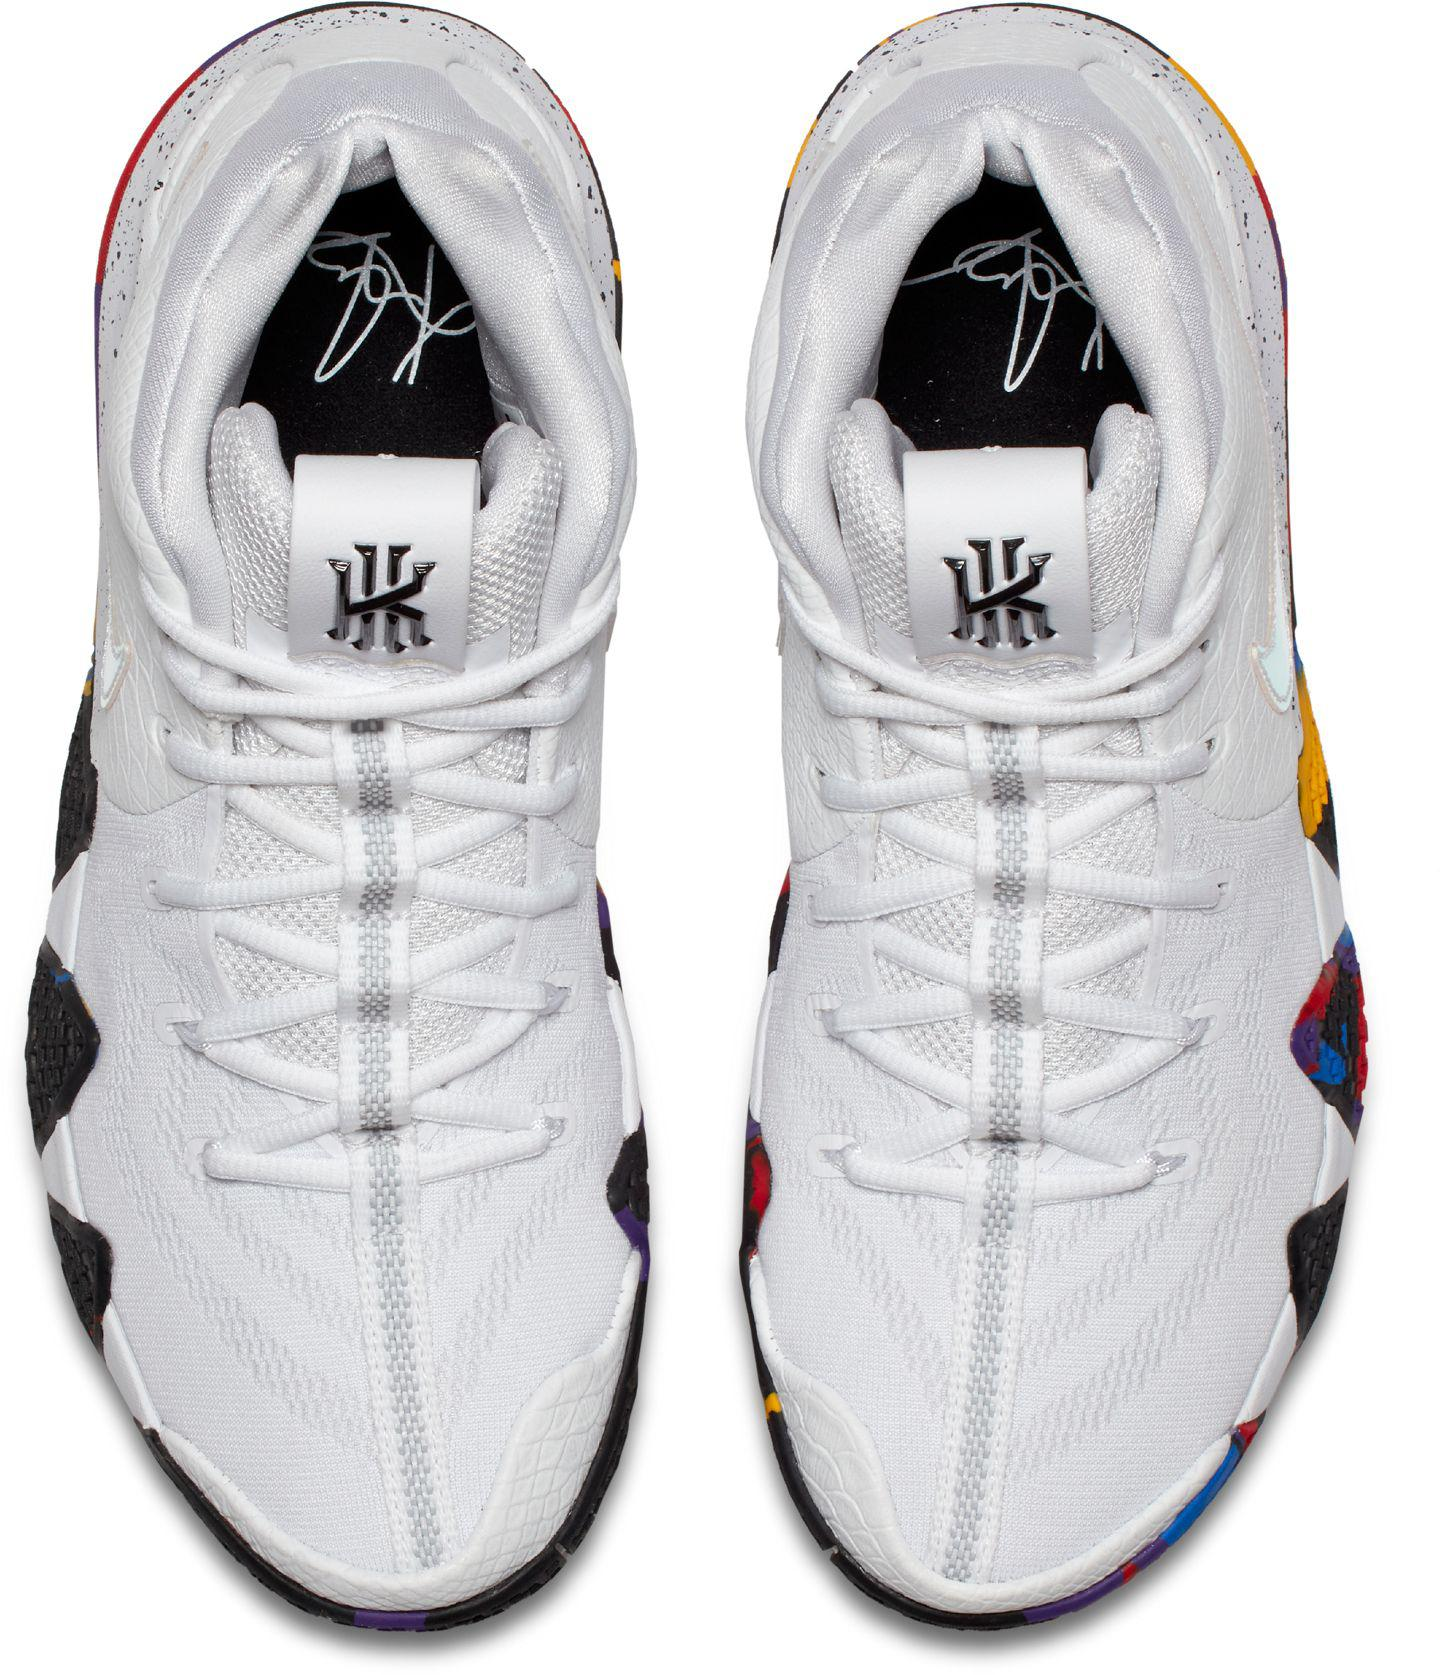 0ecf35b5ab20 Lyst - Nike Kyrie 4 Basketball Shoes in White for Men